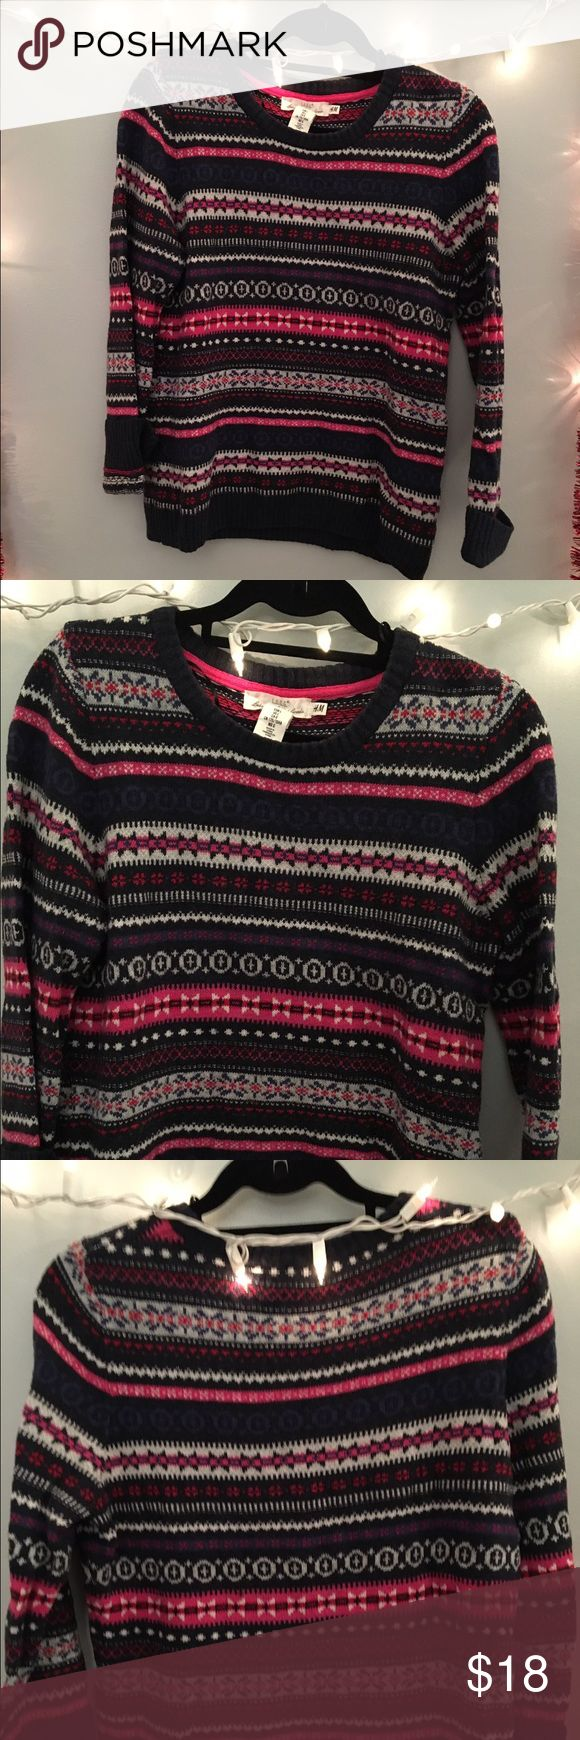 classic new england sweater channel some new england prep while sporting this bold sweater. size large from h&m it offers a perfect fall and winter collegiate look H&M Sweaters